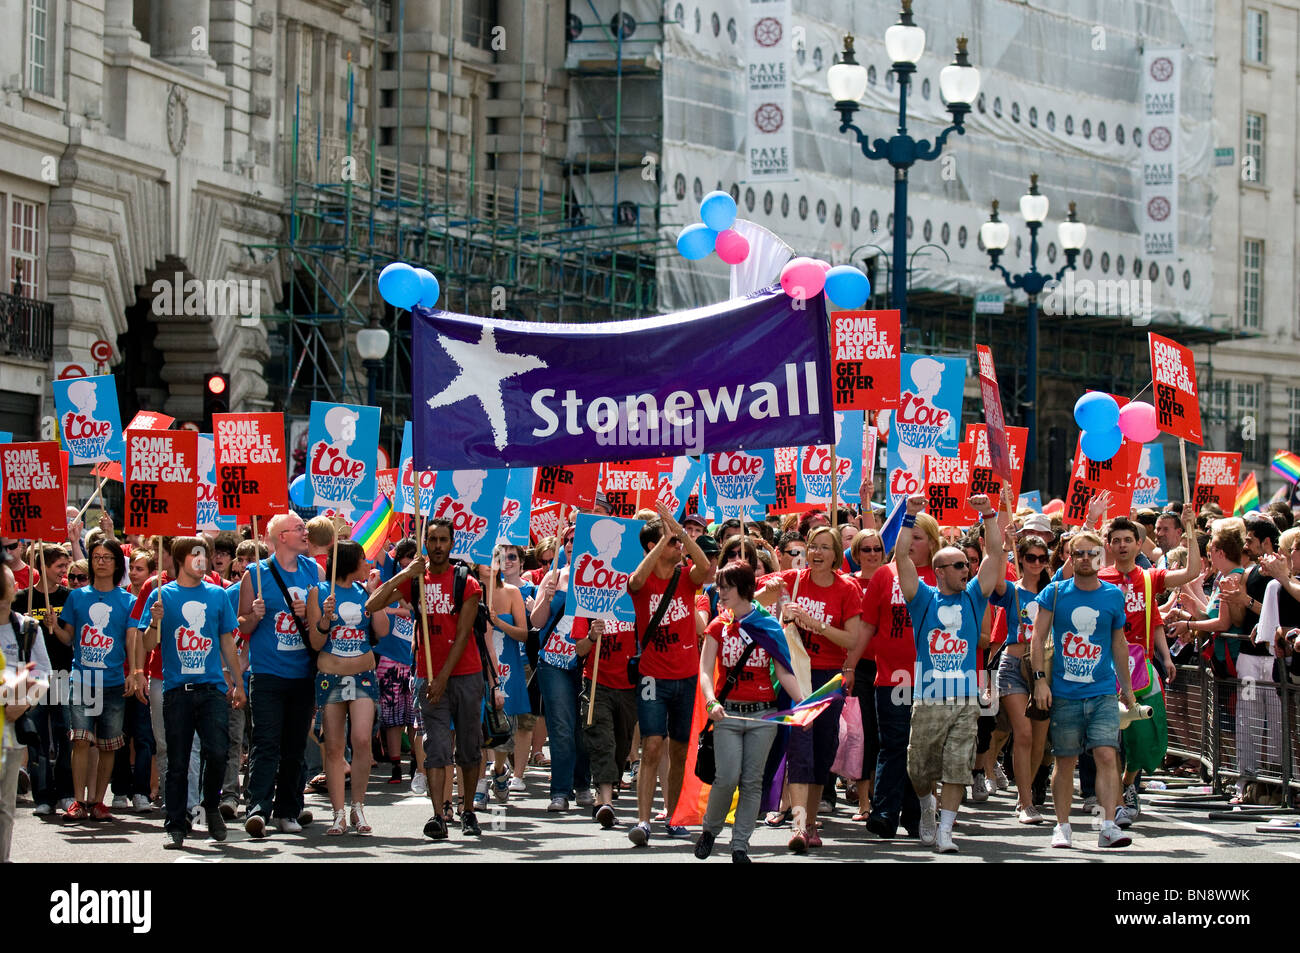 Participants holding placards and a Stonewall banner during the Pride London celebrations. - Stock Image